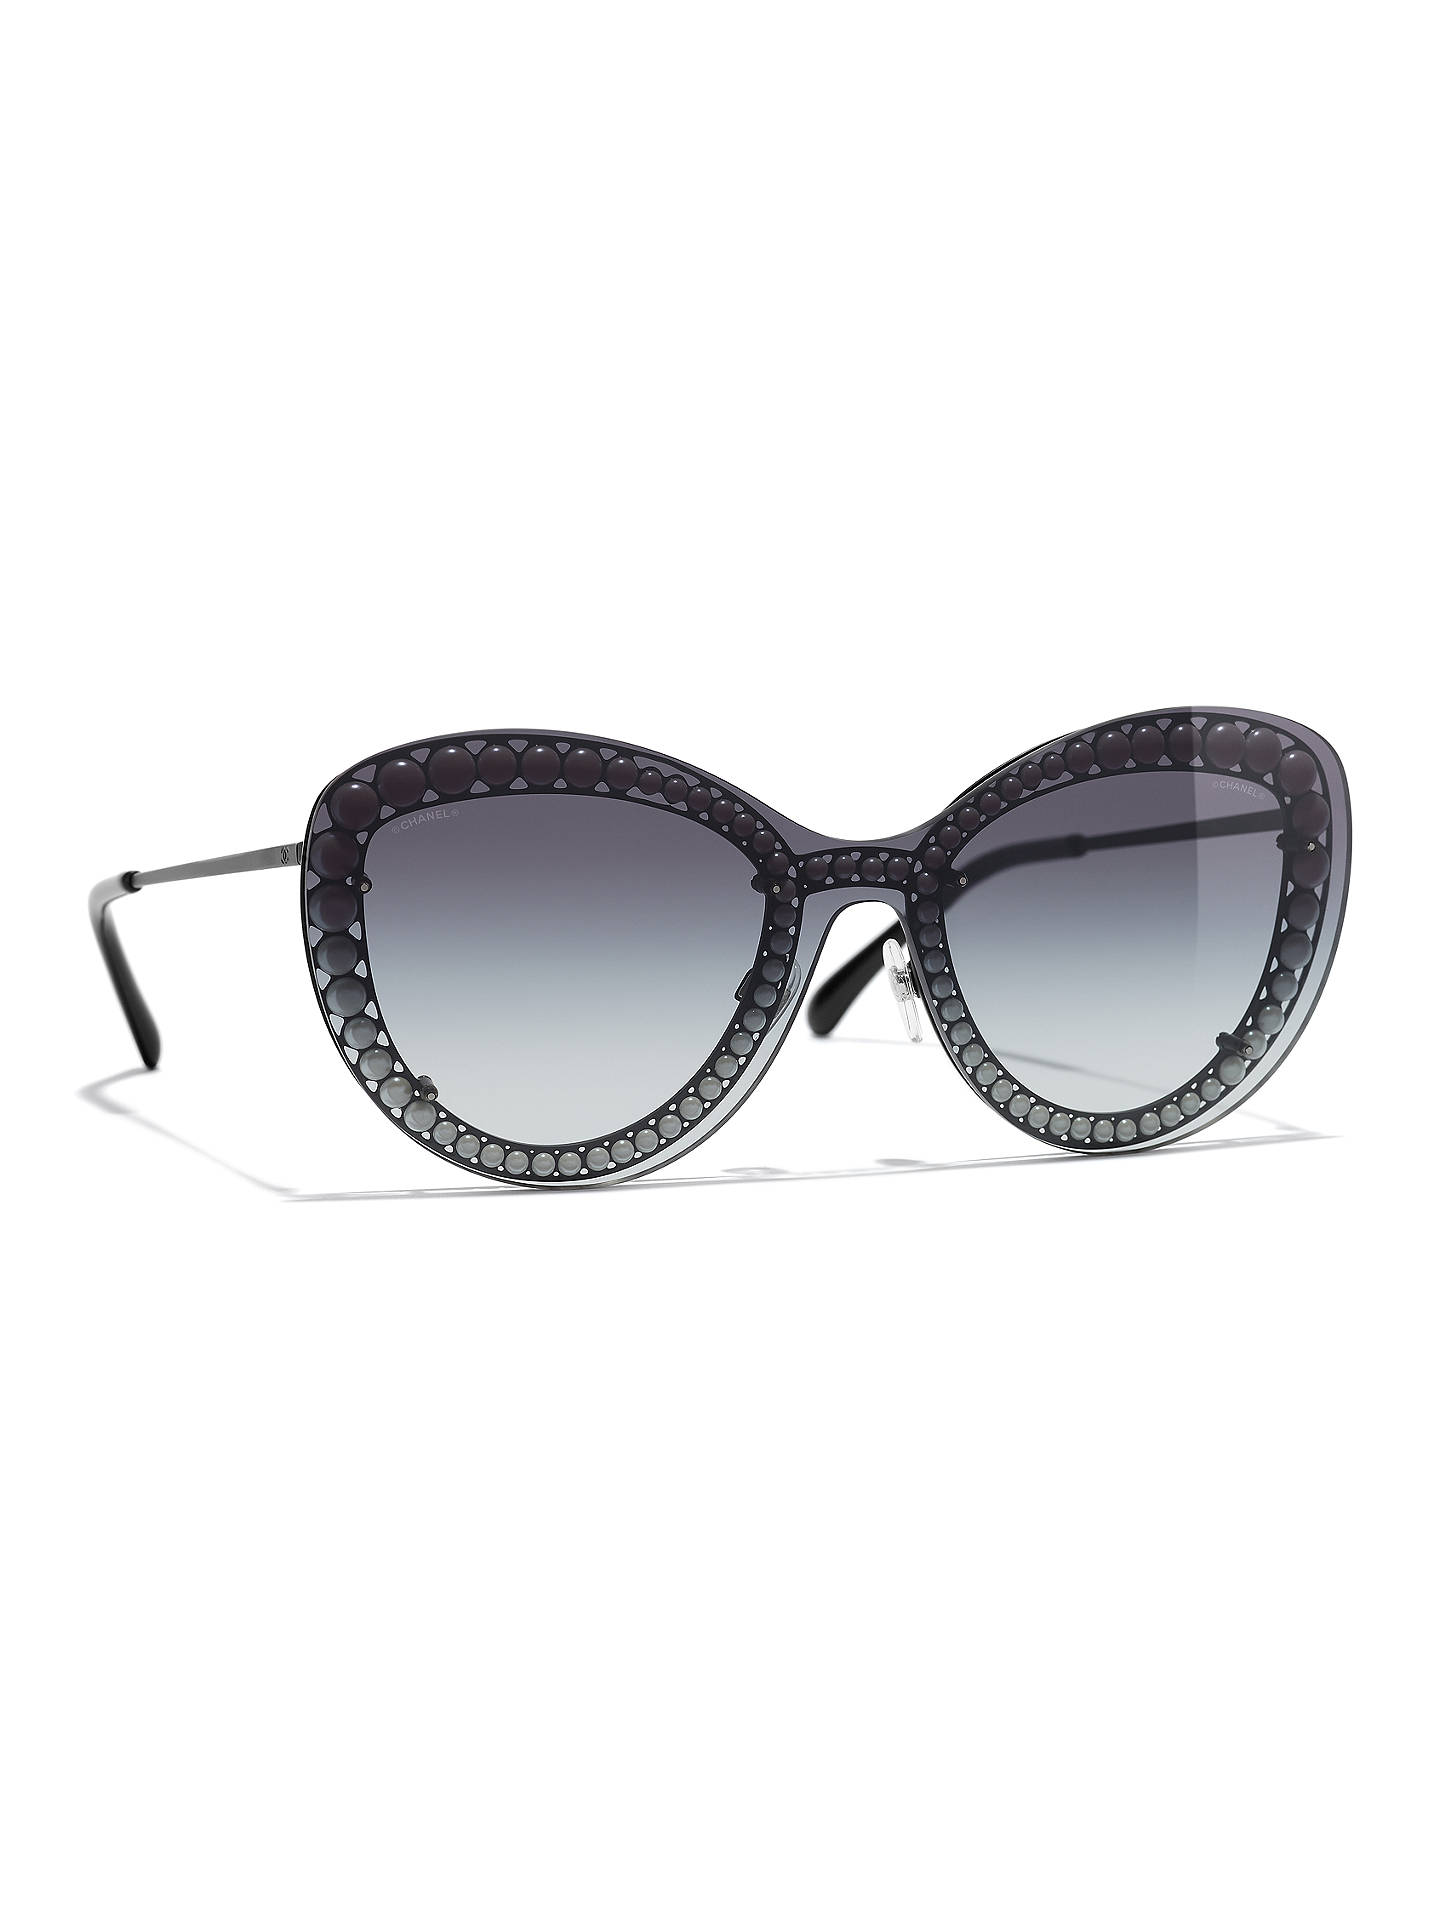 3d2288016d4 BuyCHANEL Butterfly Sunglasses CH4236H Black Online at johnlewis.com ...